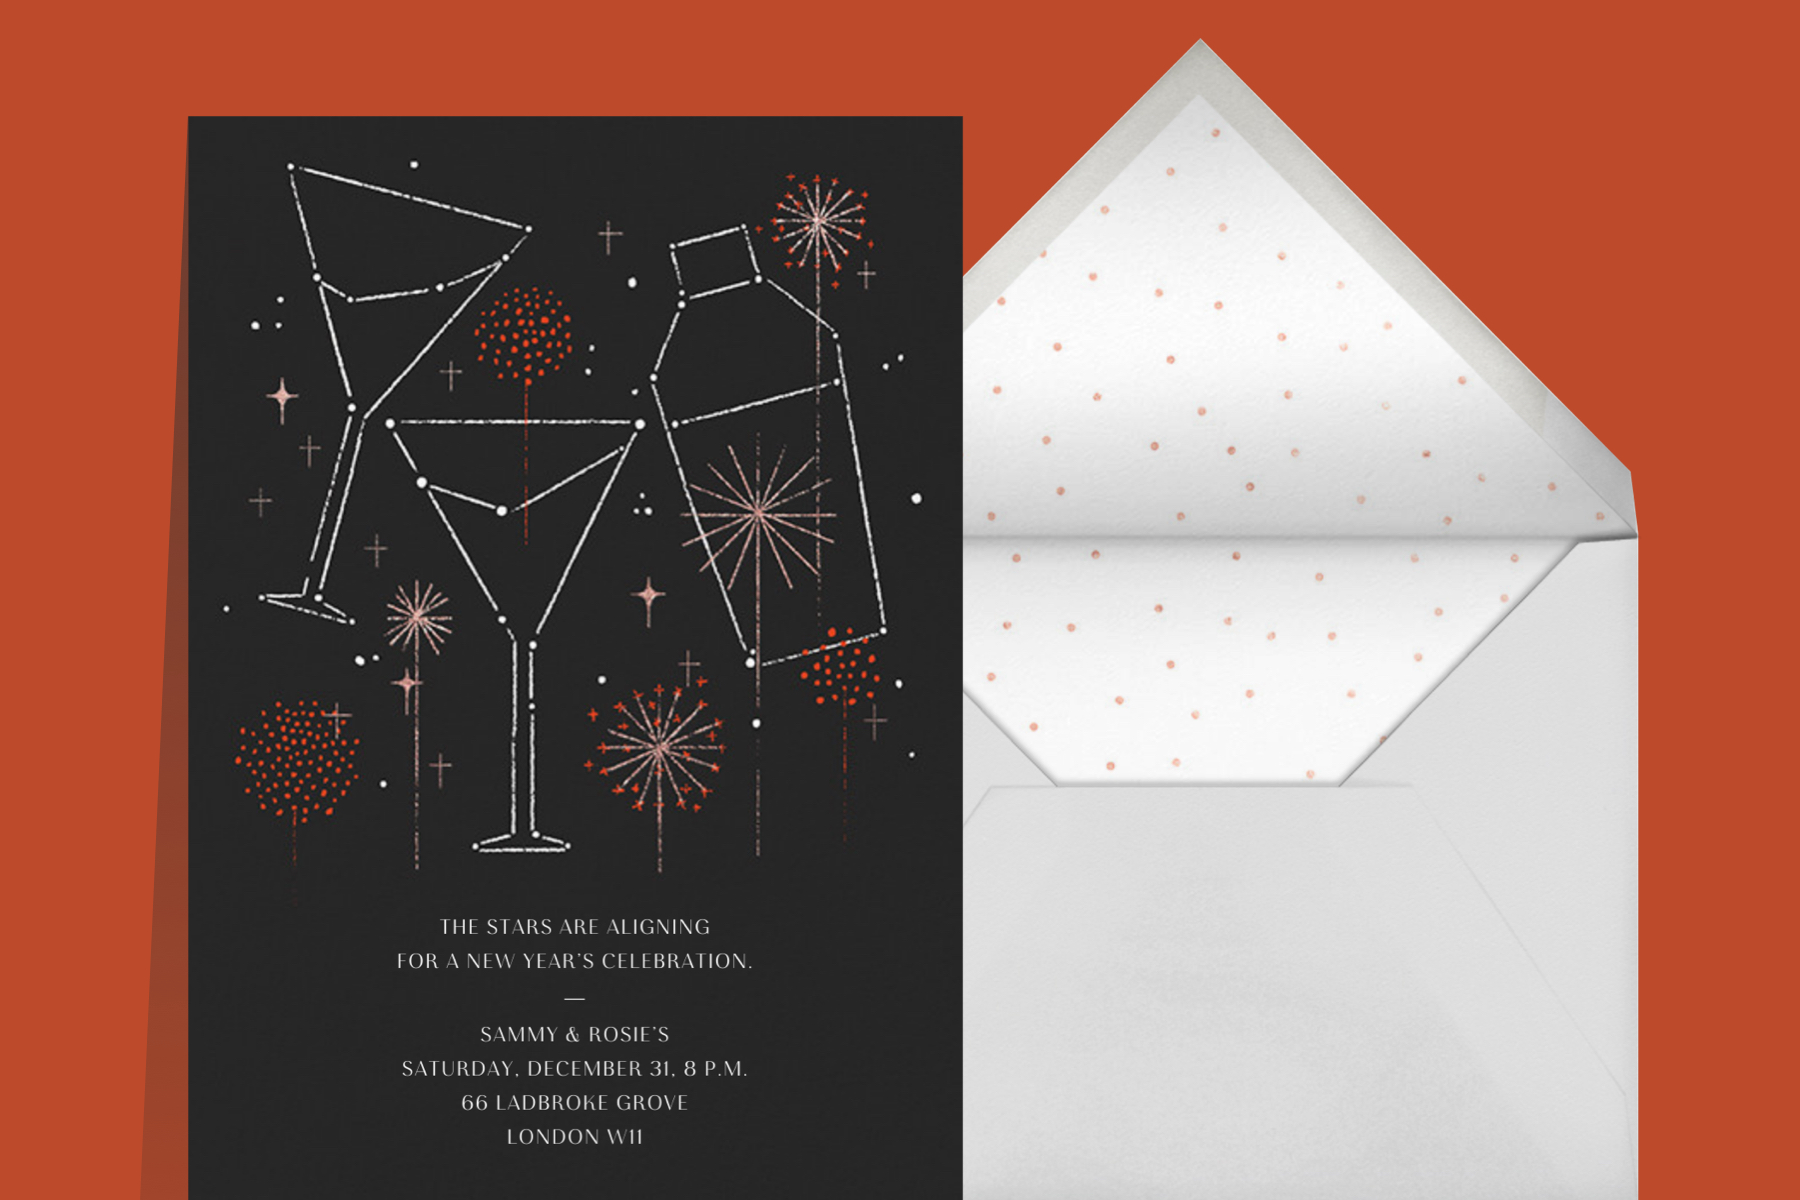 New Years Eve cocktail party invitation wording featuring a martini shaker and two glasses as constellations in the sky